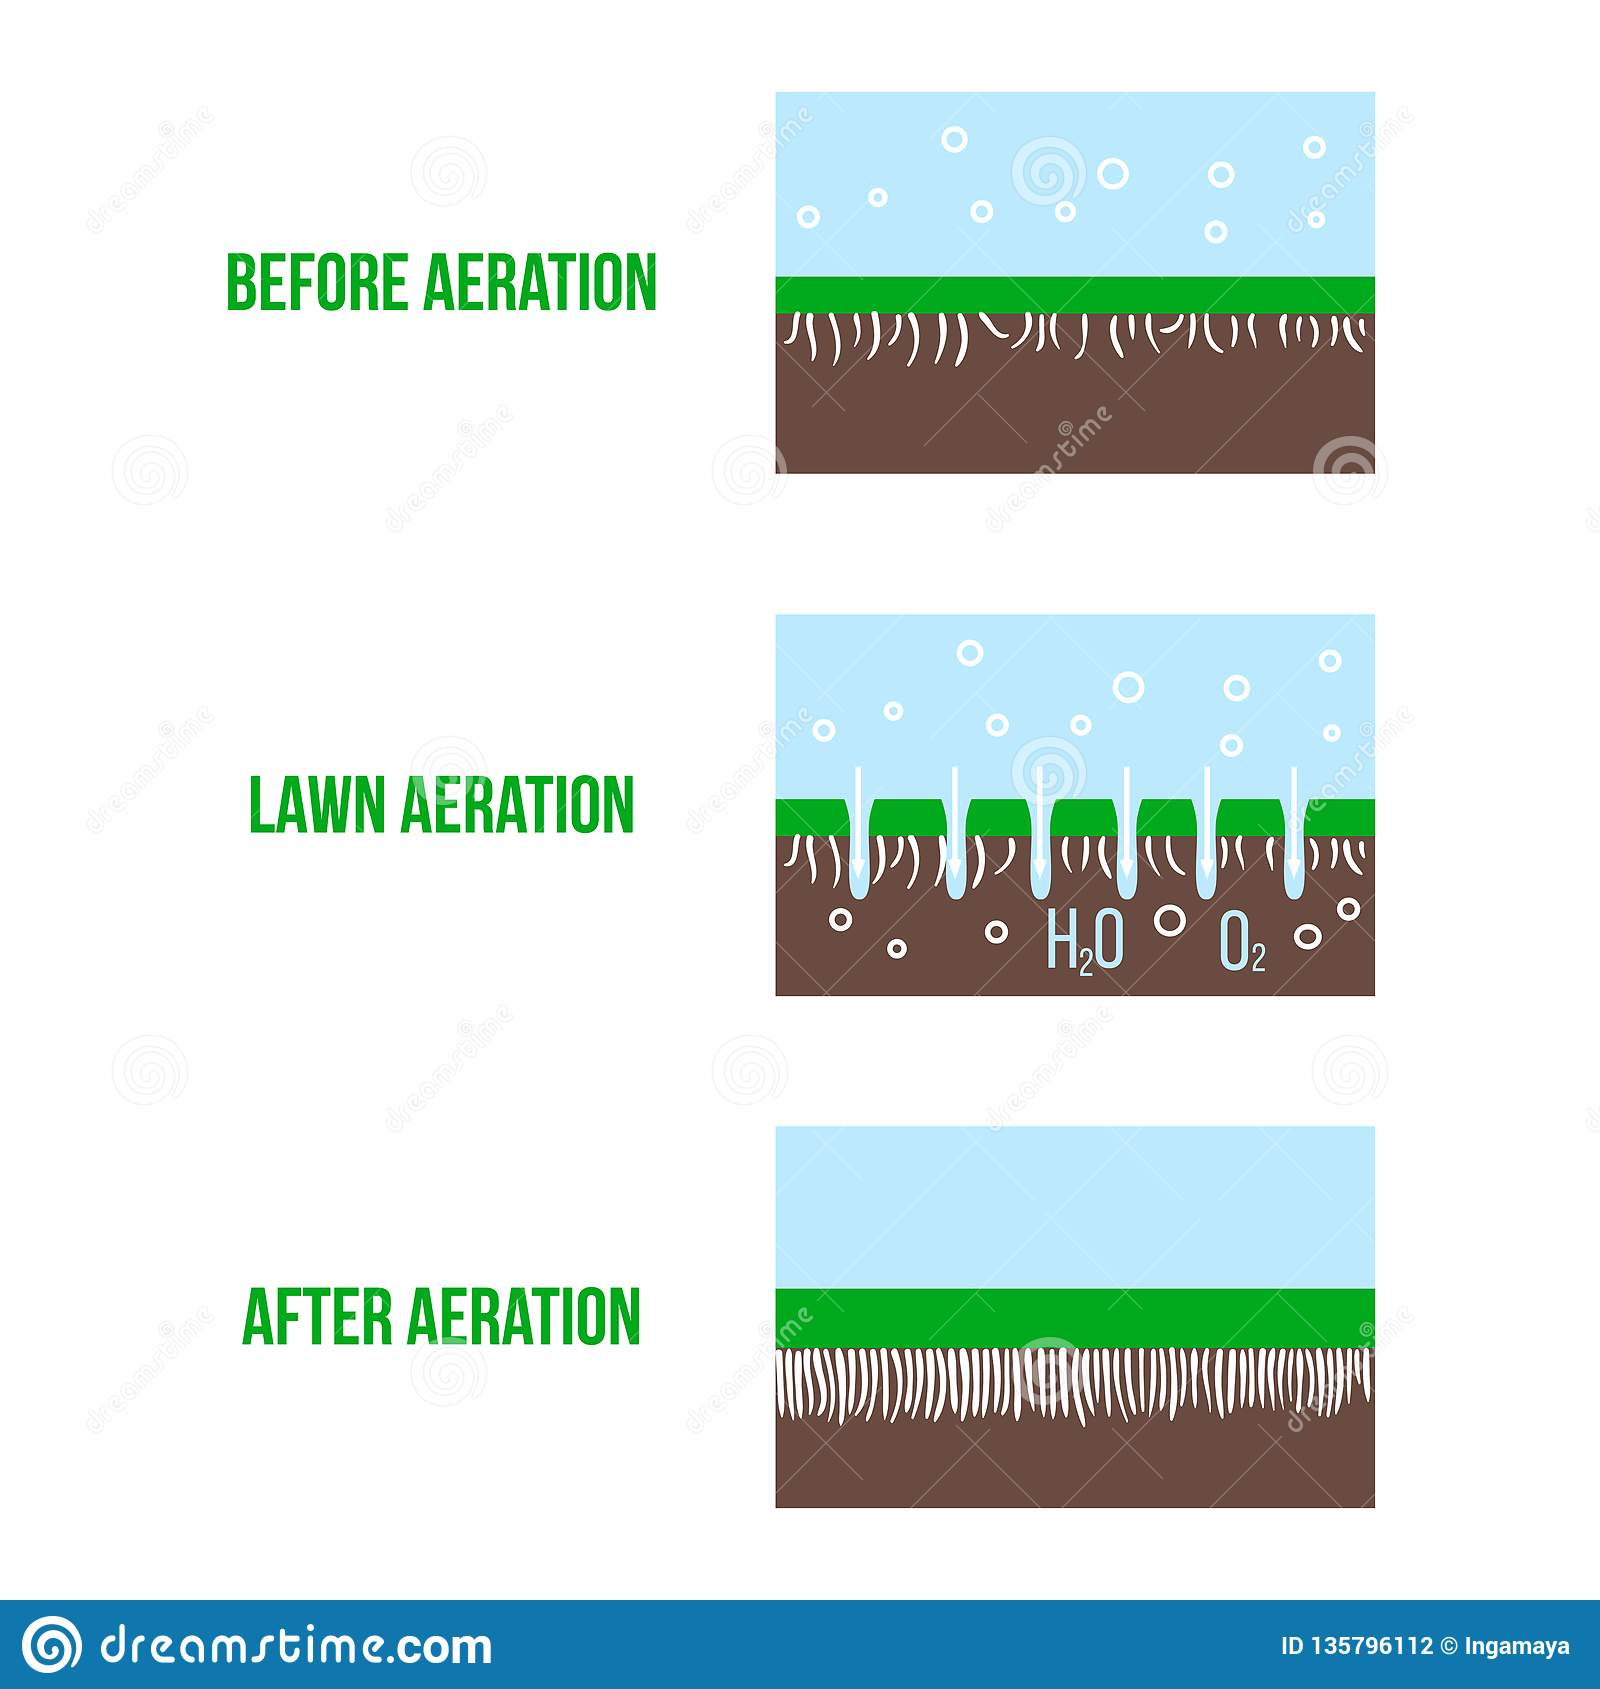 Lawn aeration stage illustration. Gardening grass lawncare, landscaping service. Vector isolated on white